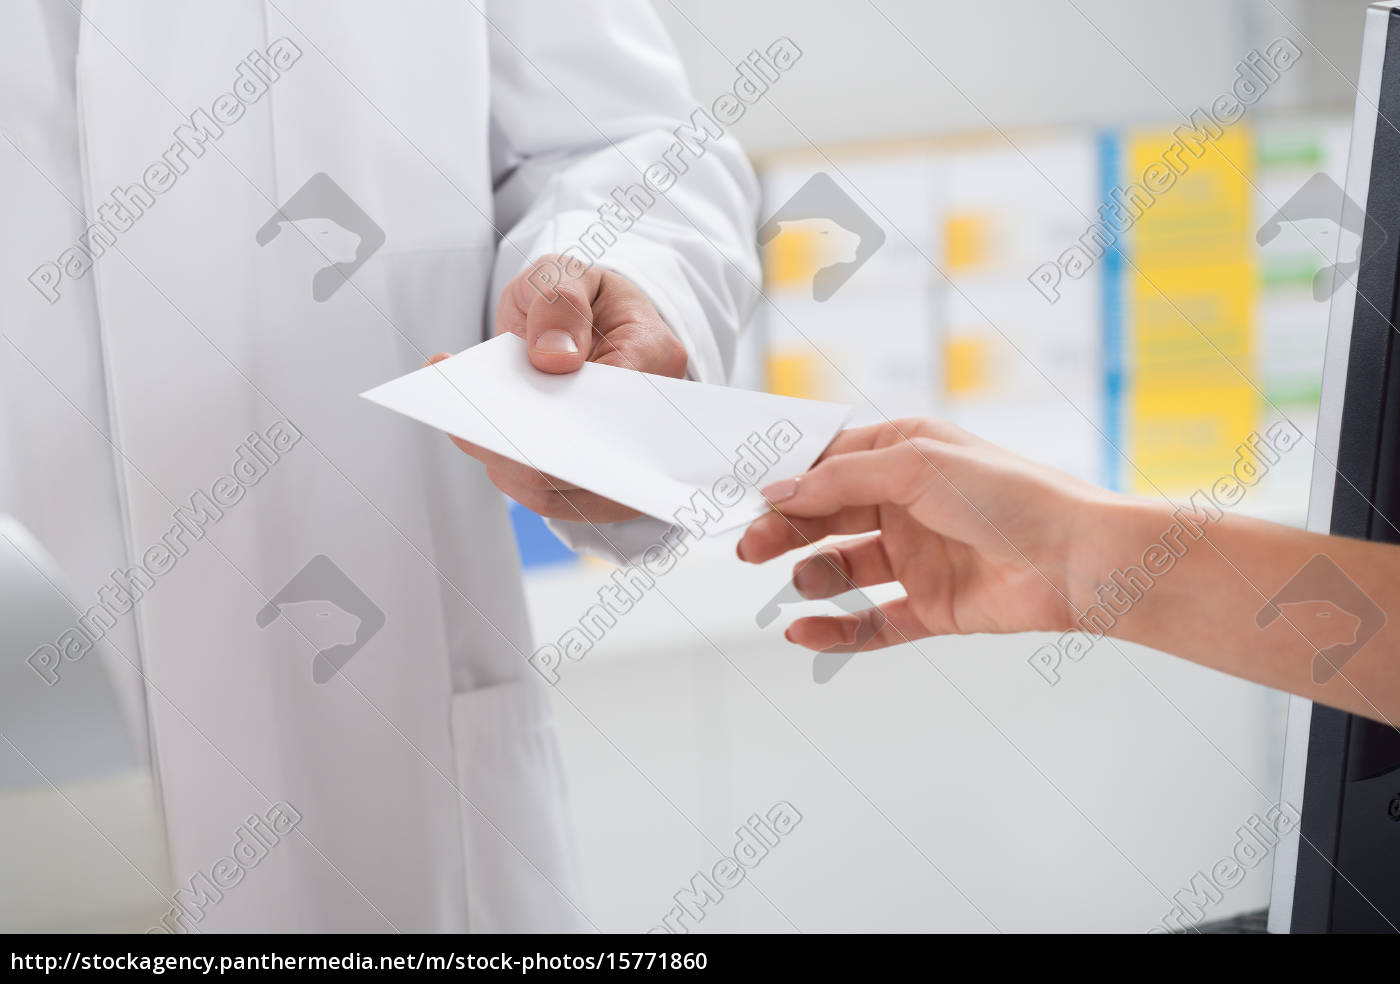 woman, giving, prescription, paper, to, pharmacist - 15771860